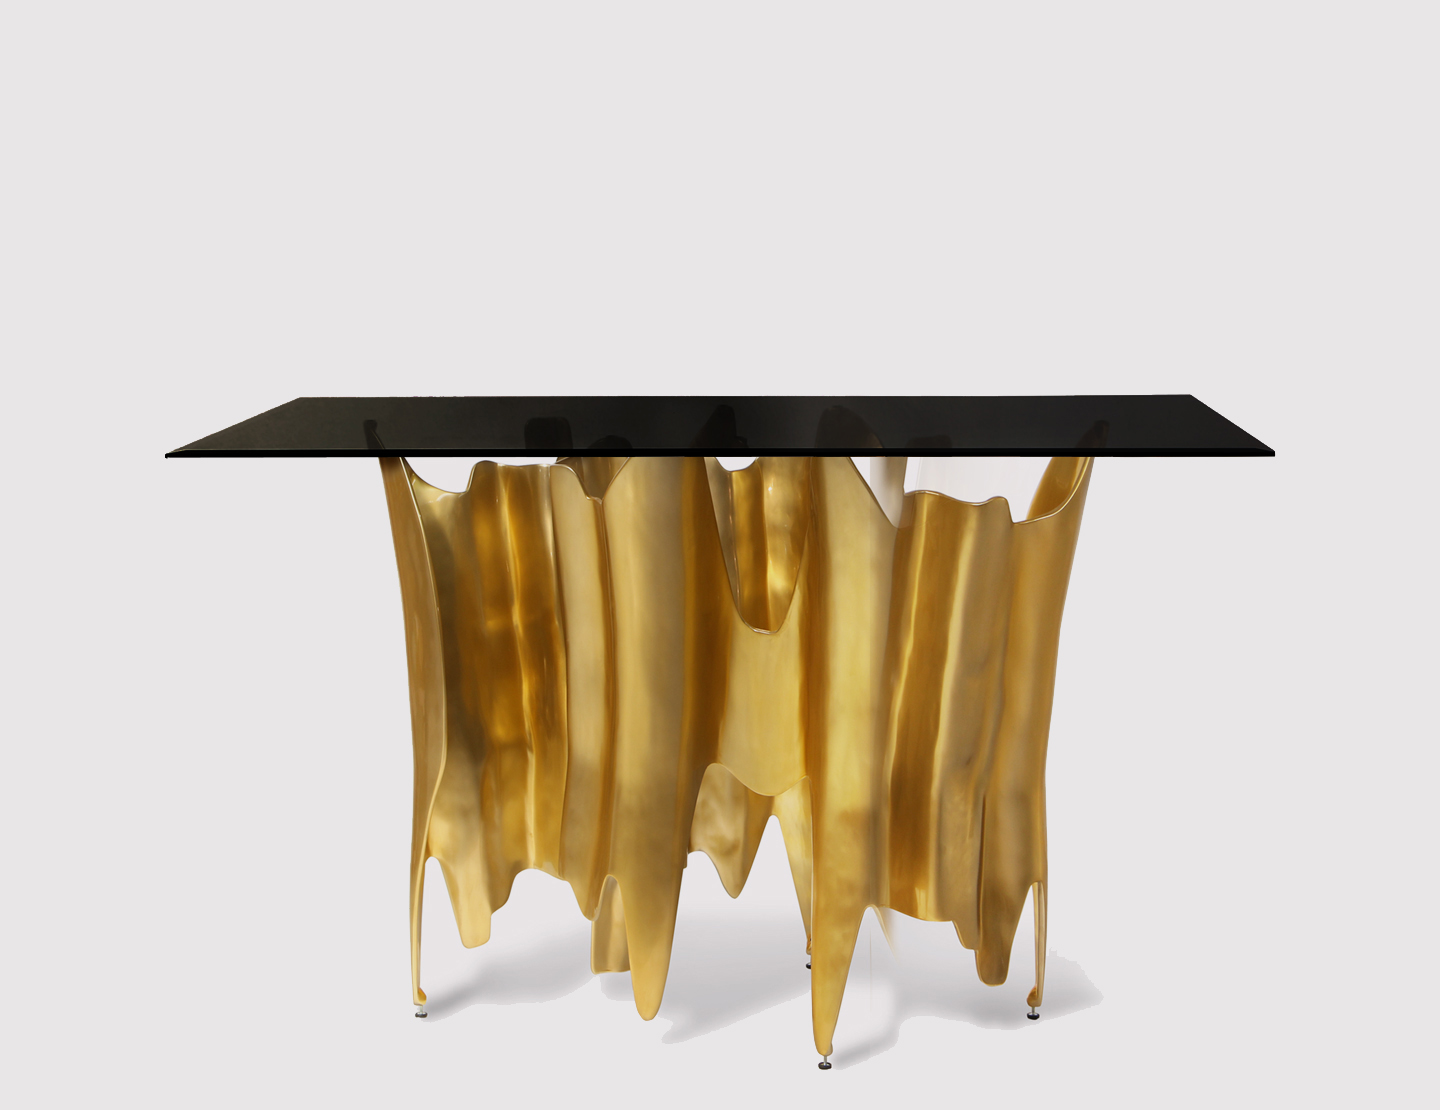 Picture of: Obssedia Console Luxury Console Table By Koket